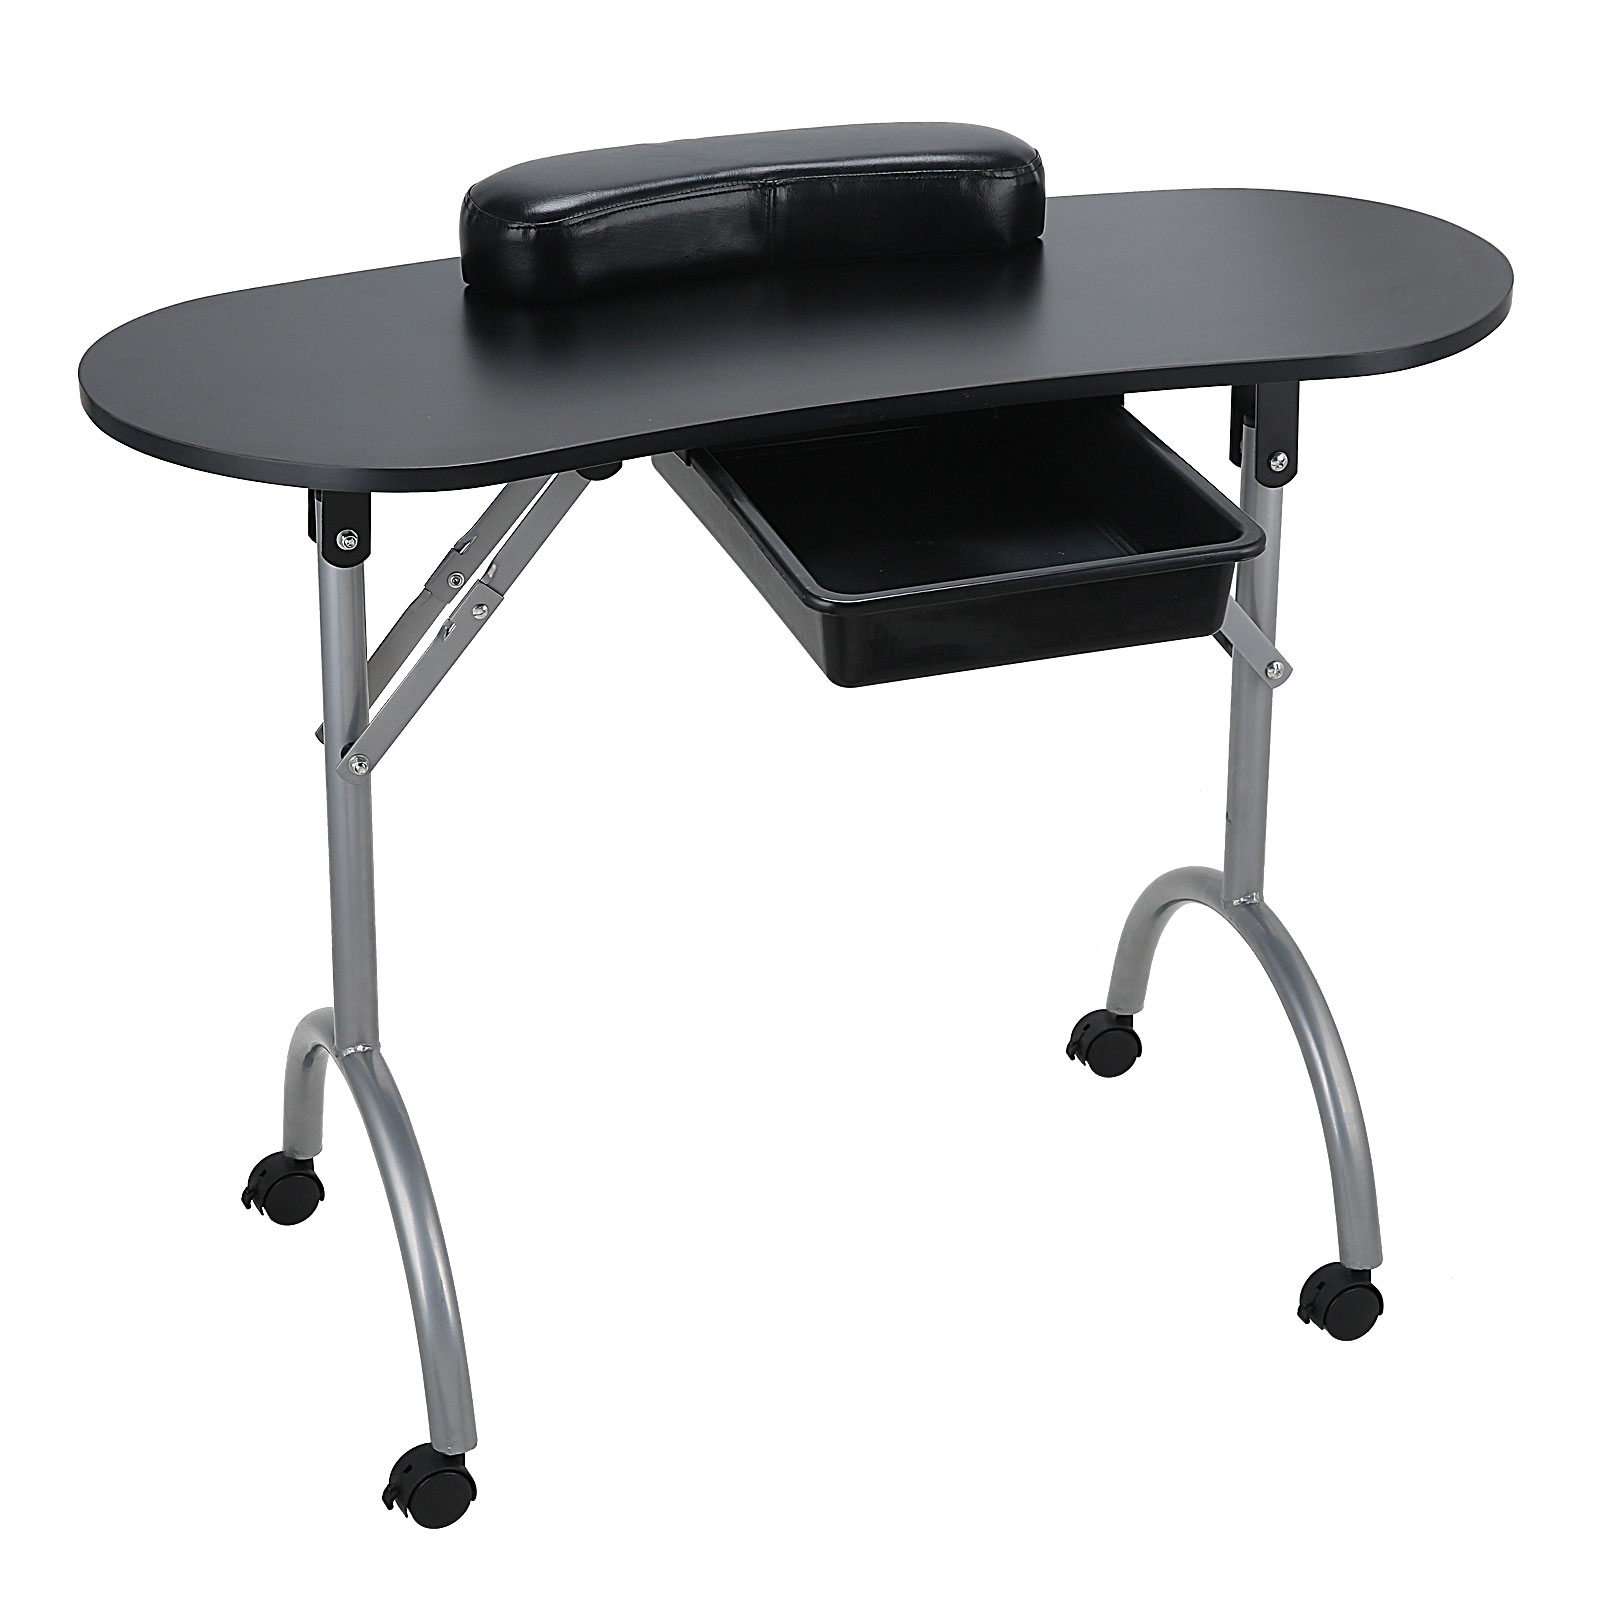 Portable manicure nail art hand table mobile foldable desk for Portable manicure table nail technician workstation